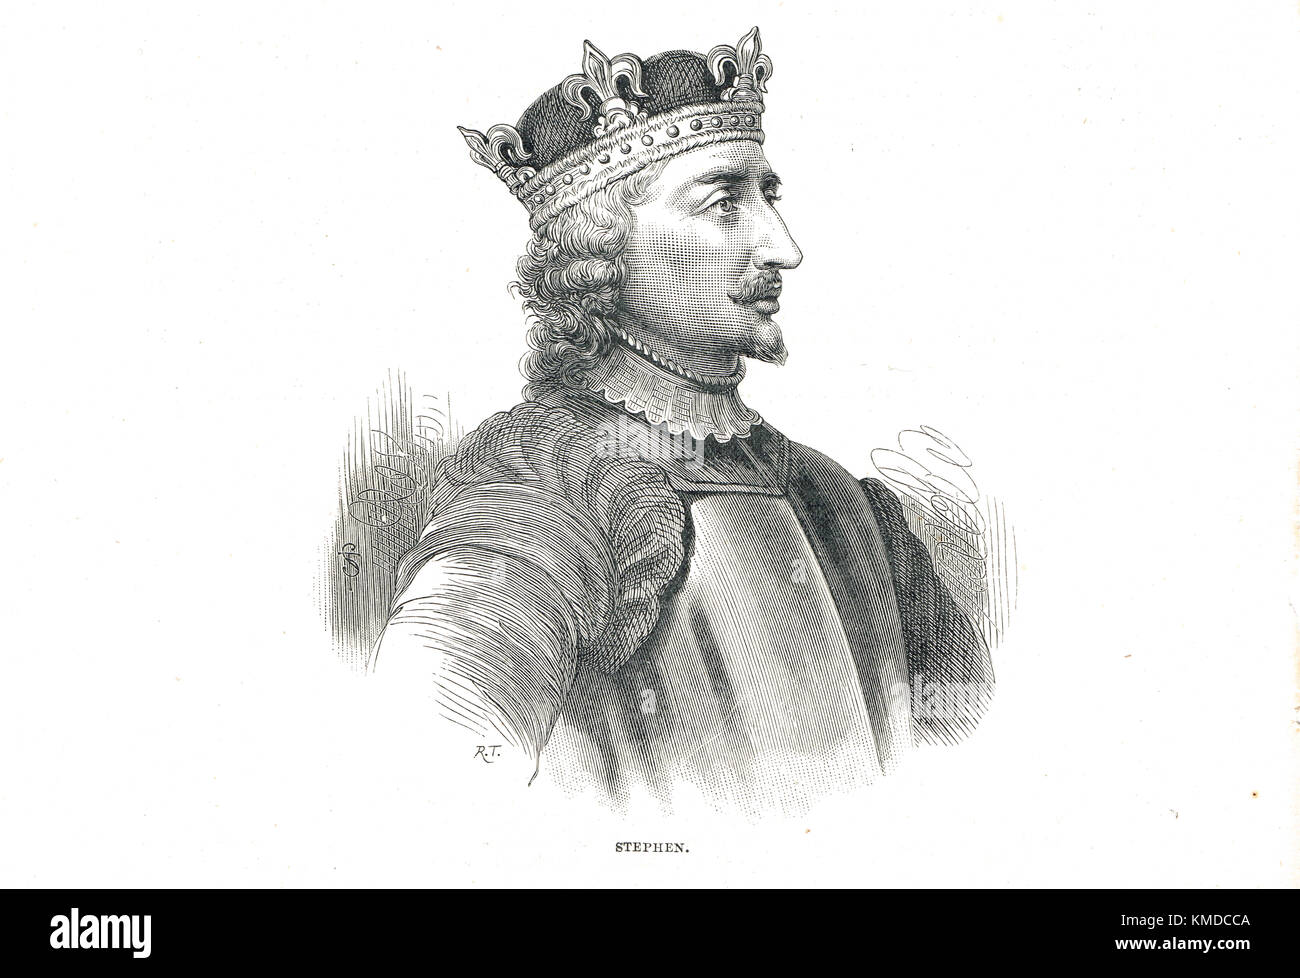 Stephen, King of England (1092-1154) Reigned 1135-1154 - Stock Image